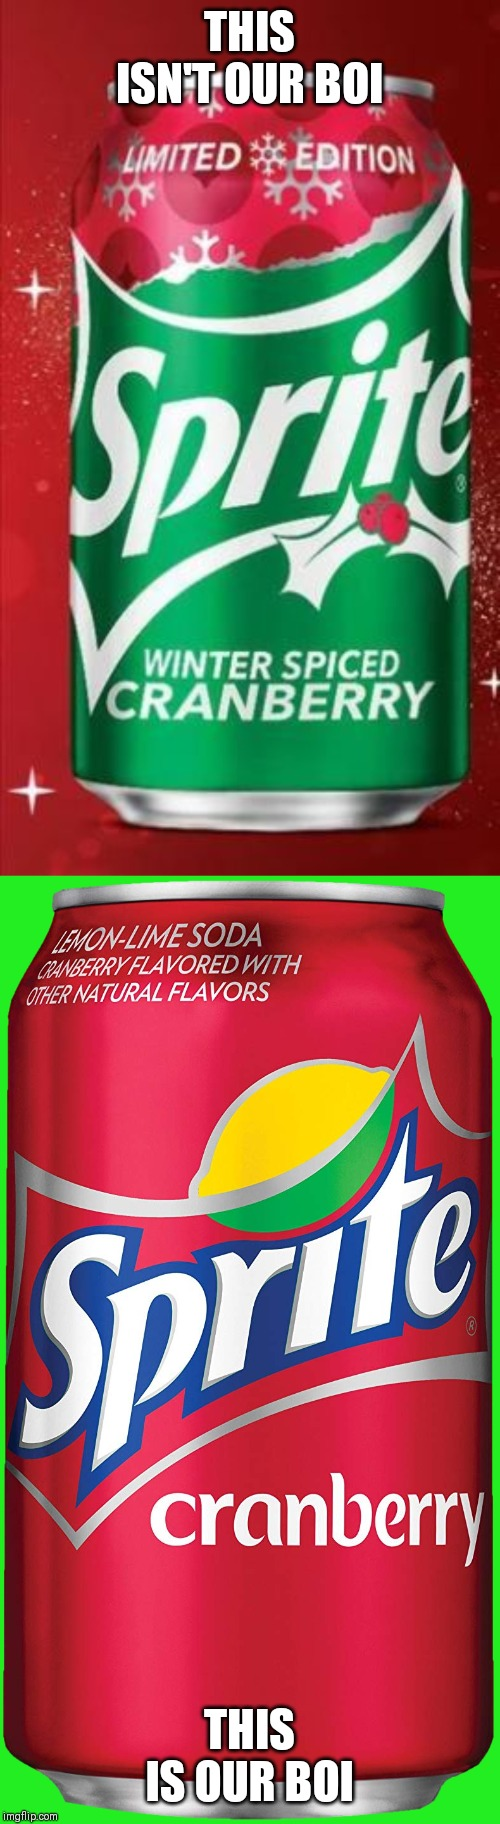 Wanna Sprite Cranberry or that winter spiced sprite cranberry? | THIS ISN'T OUR BOI THIS IS OUR BOI | image tagged in sprite cranberry,sprite winter sliced cranberry,sprite,wanna sprite cranberry,memes | made w/ Imgflip meme maker